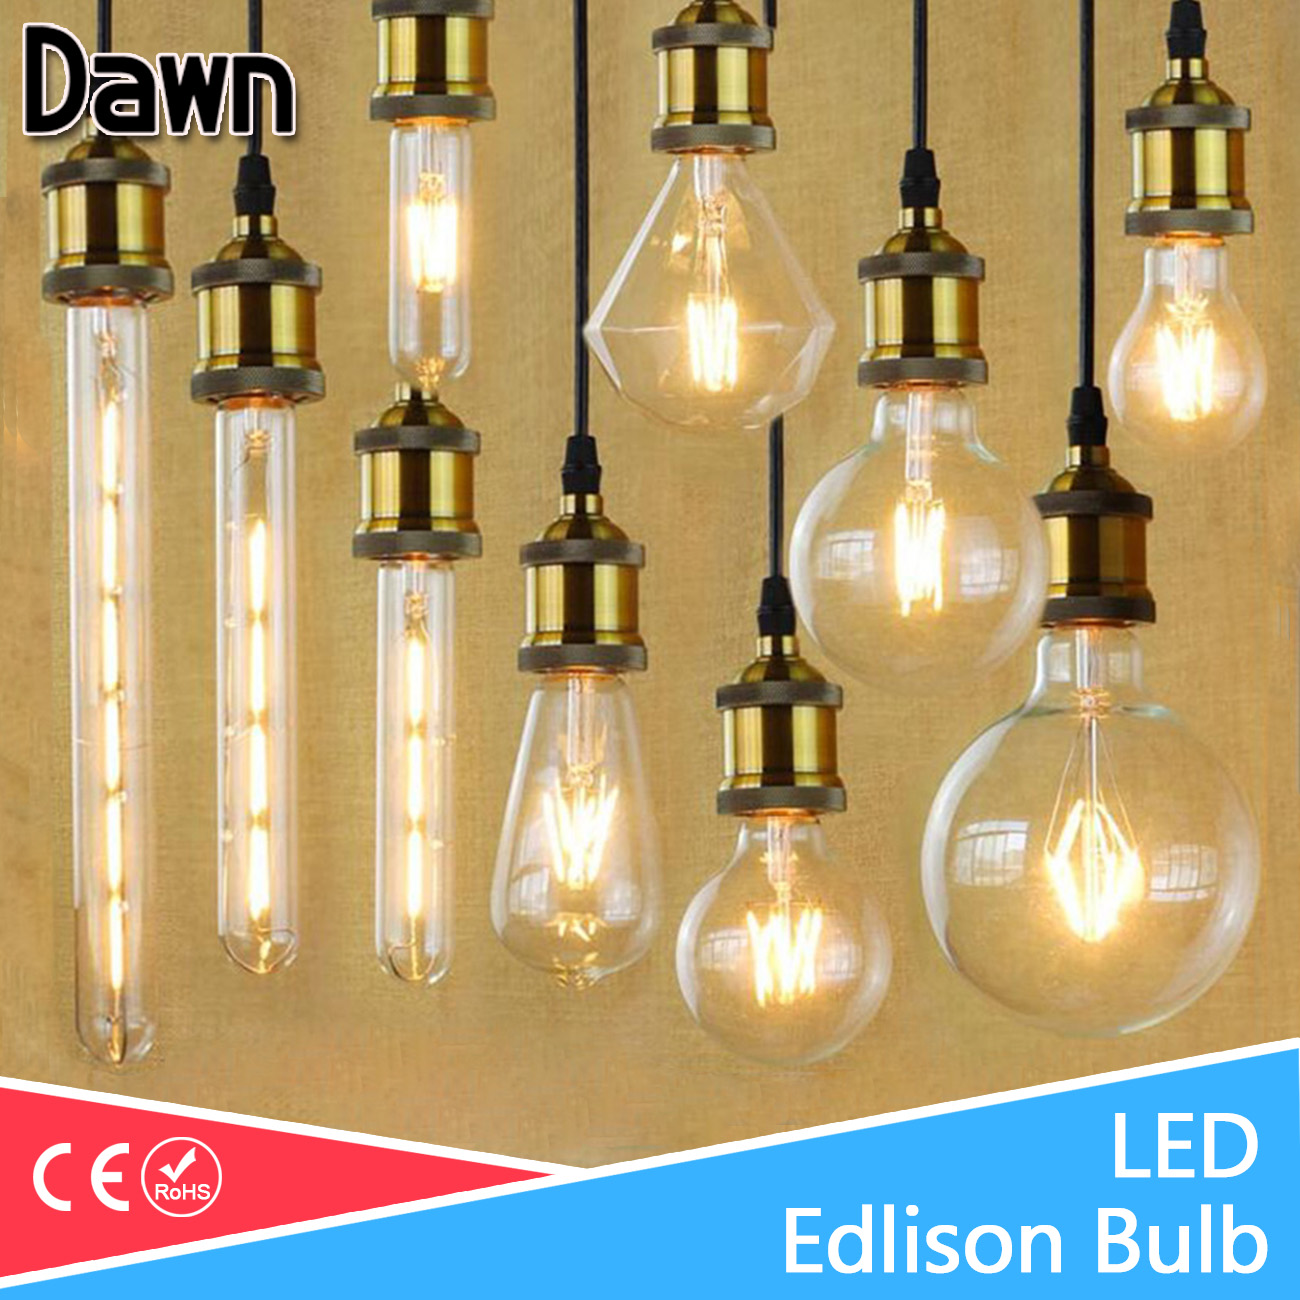 Lampada LED Filament Glass Light Edison Blub Lamps 220V LED Edison chandelier E14 E27 240V Vintage Led Bulb 2W 4W 6W 8W 12W 5pcs e27 led bulb 2w 4w 6w vintage cold white warm white edison lamp g45 led filament decorative bulb ac 220v 240v